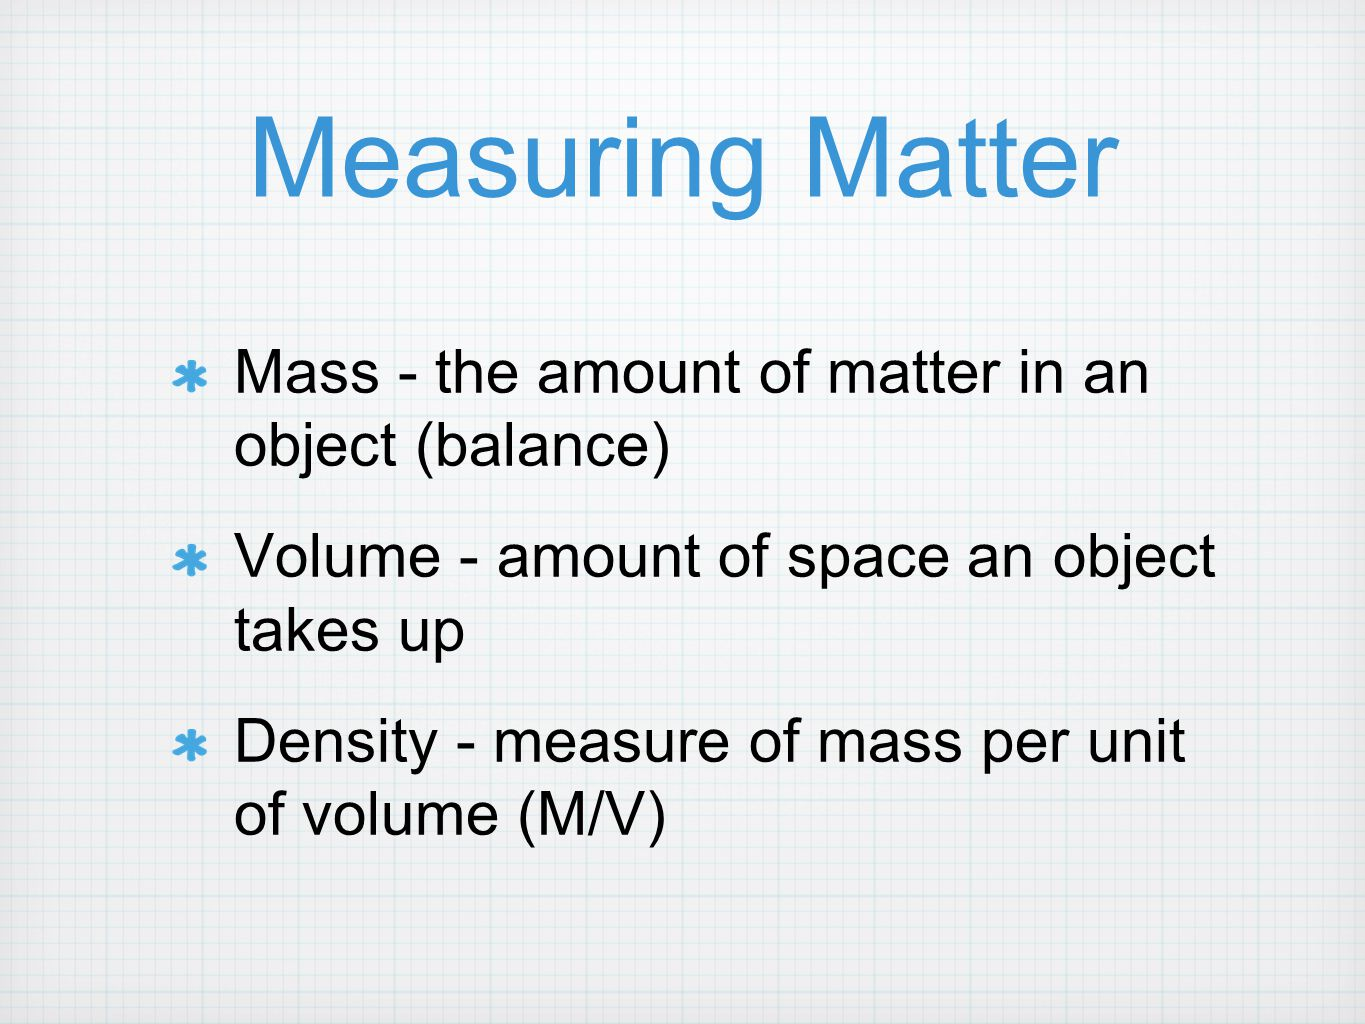 Measuring Matter Mass - the amount of matter in an object (balance) Volume - amount of space an object takes up Density - measure of mass per unit of